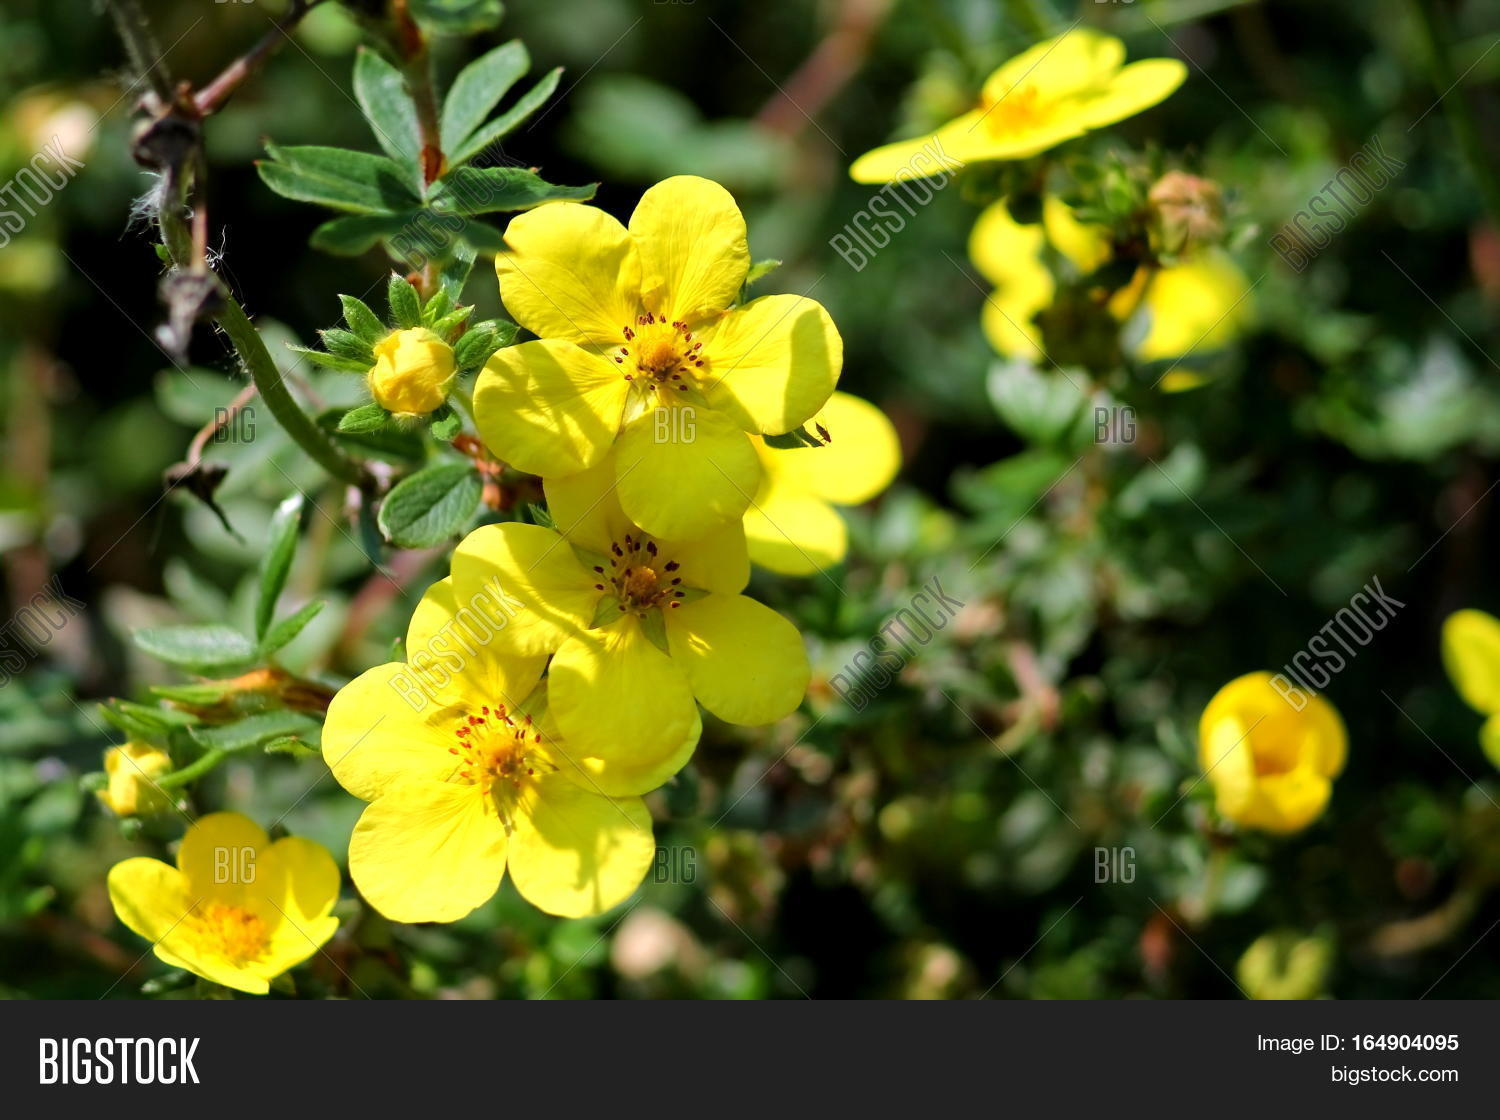 Yellow round five petals flowers image photo bigstock yellow round five petals flowers of dasiphora fruticosa blossoms of shrubby cinquefoil mightylinksfo